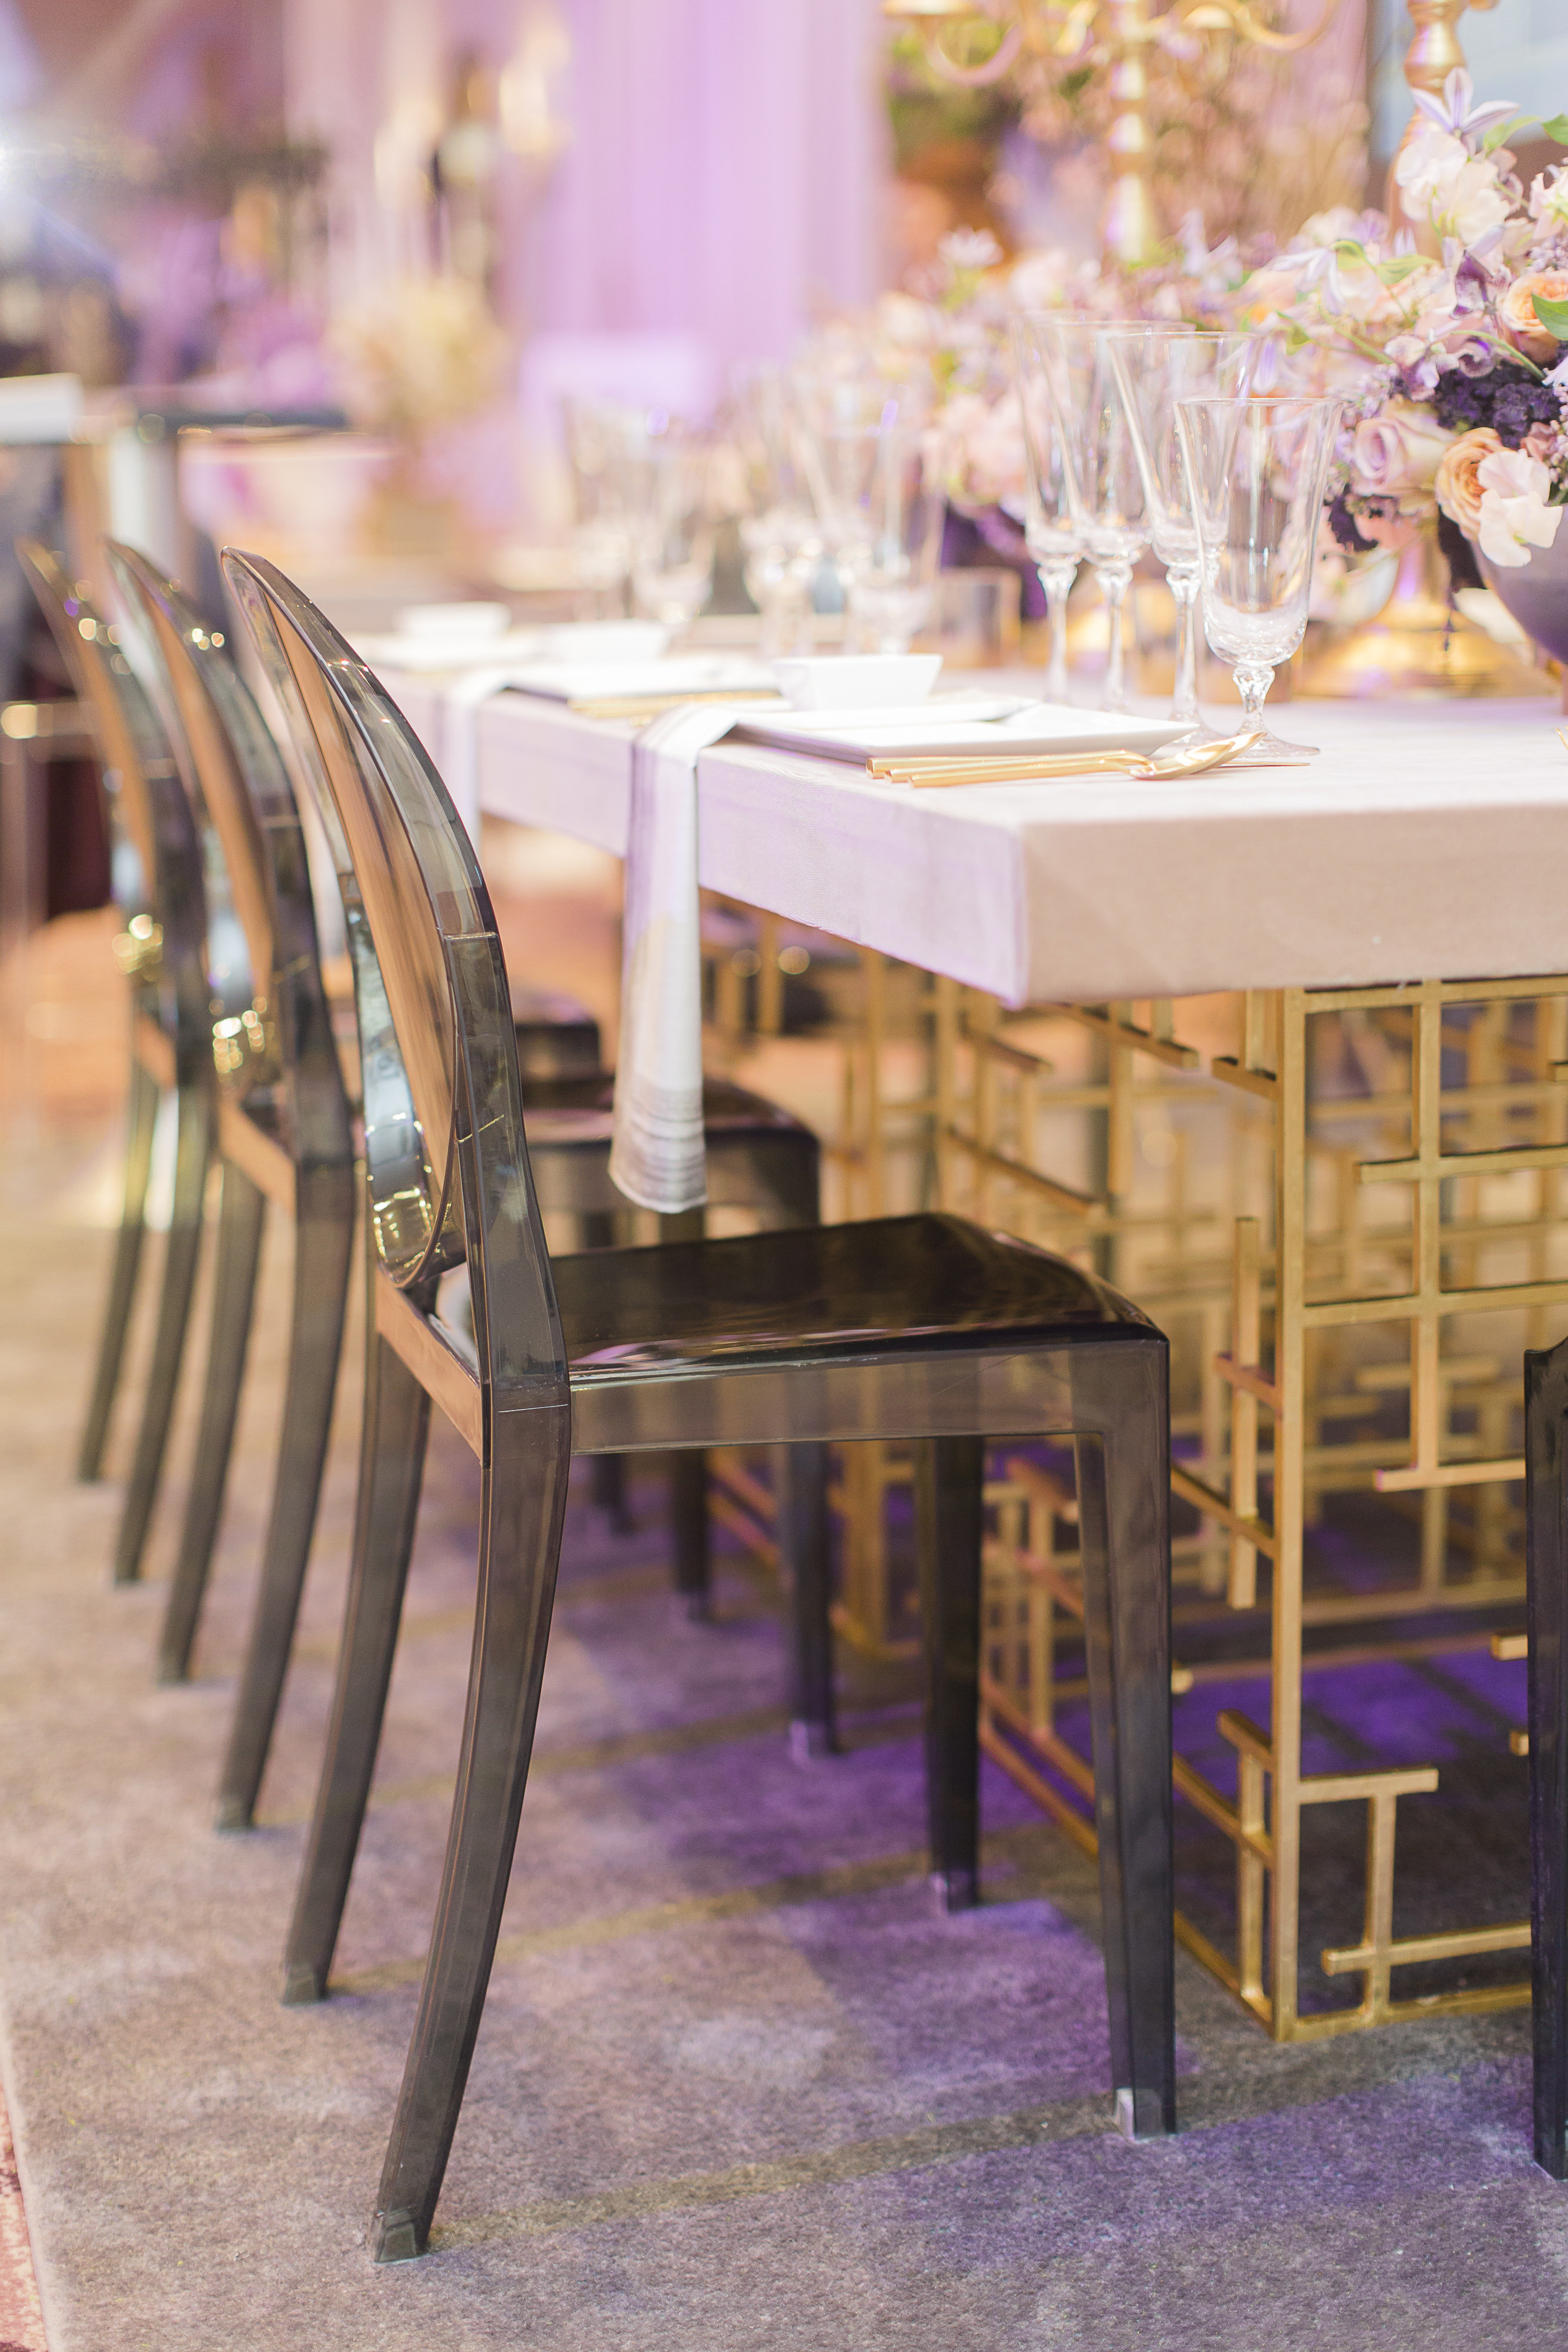 An Evening of Bridal Luxury - LIVE! Event Design